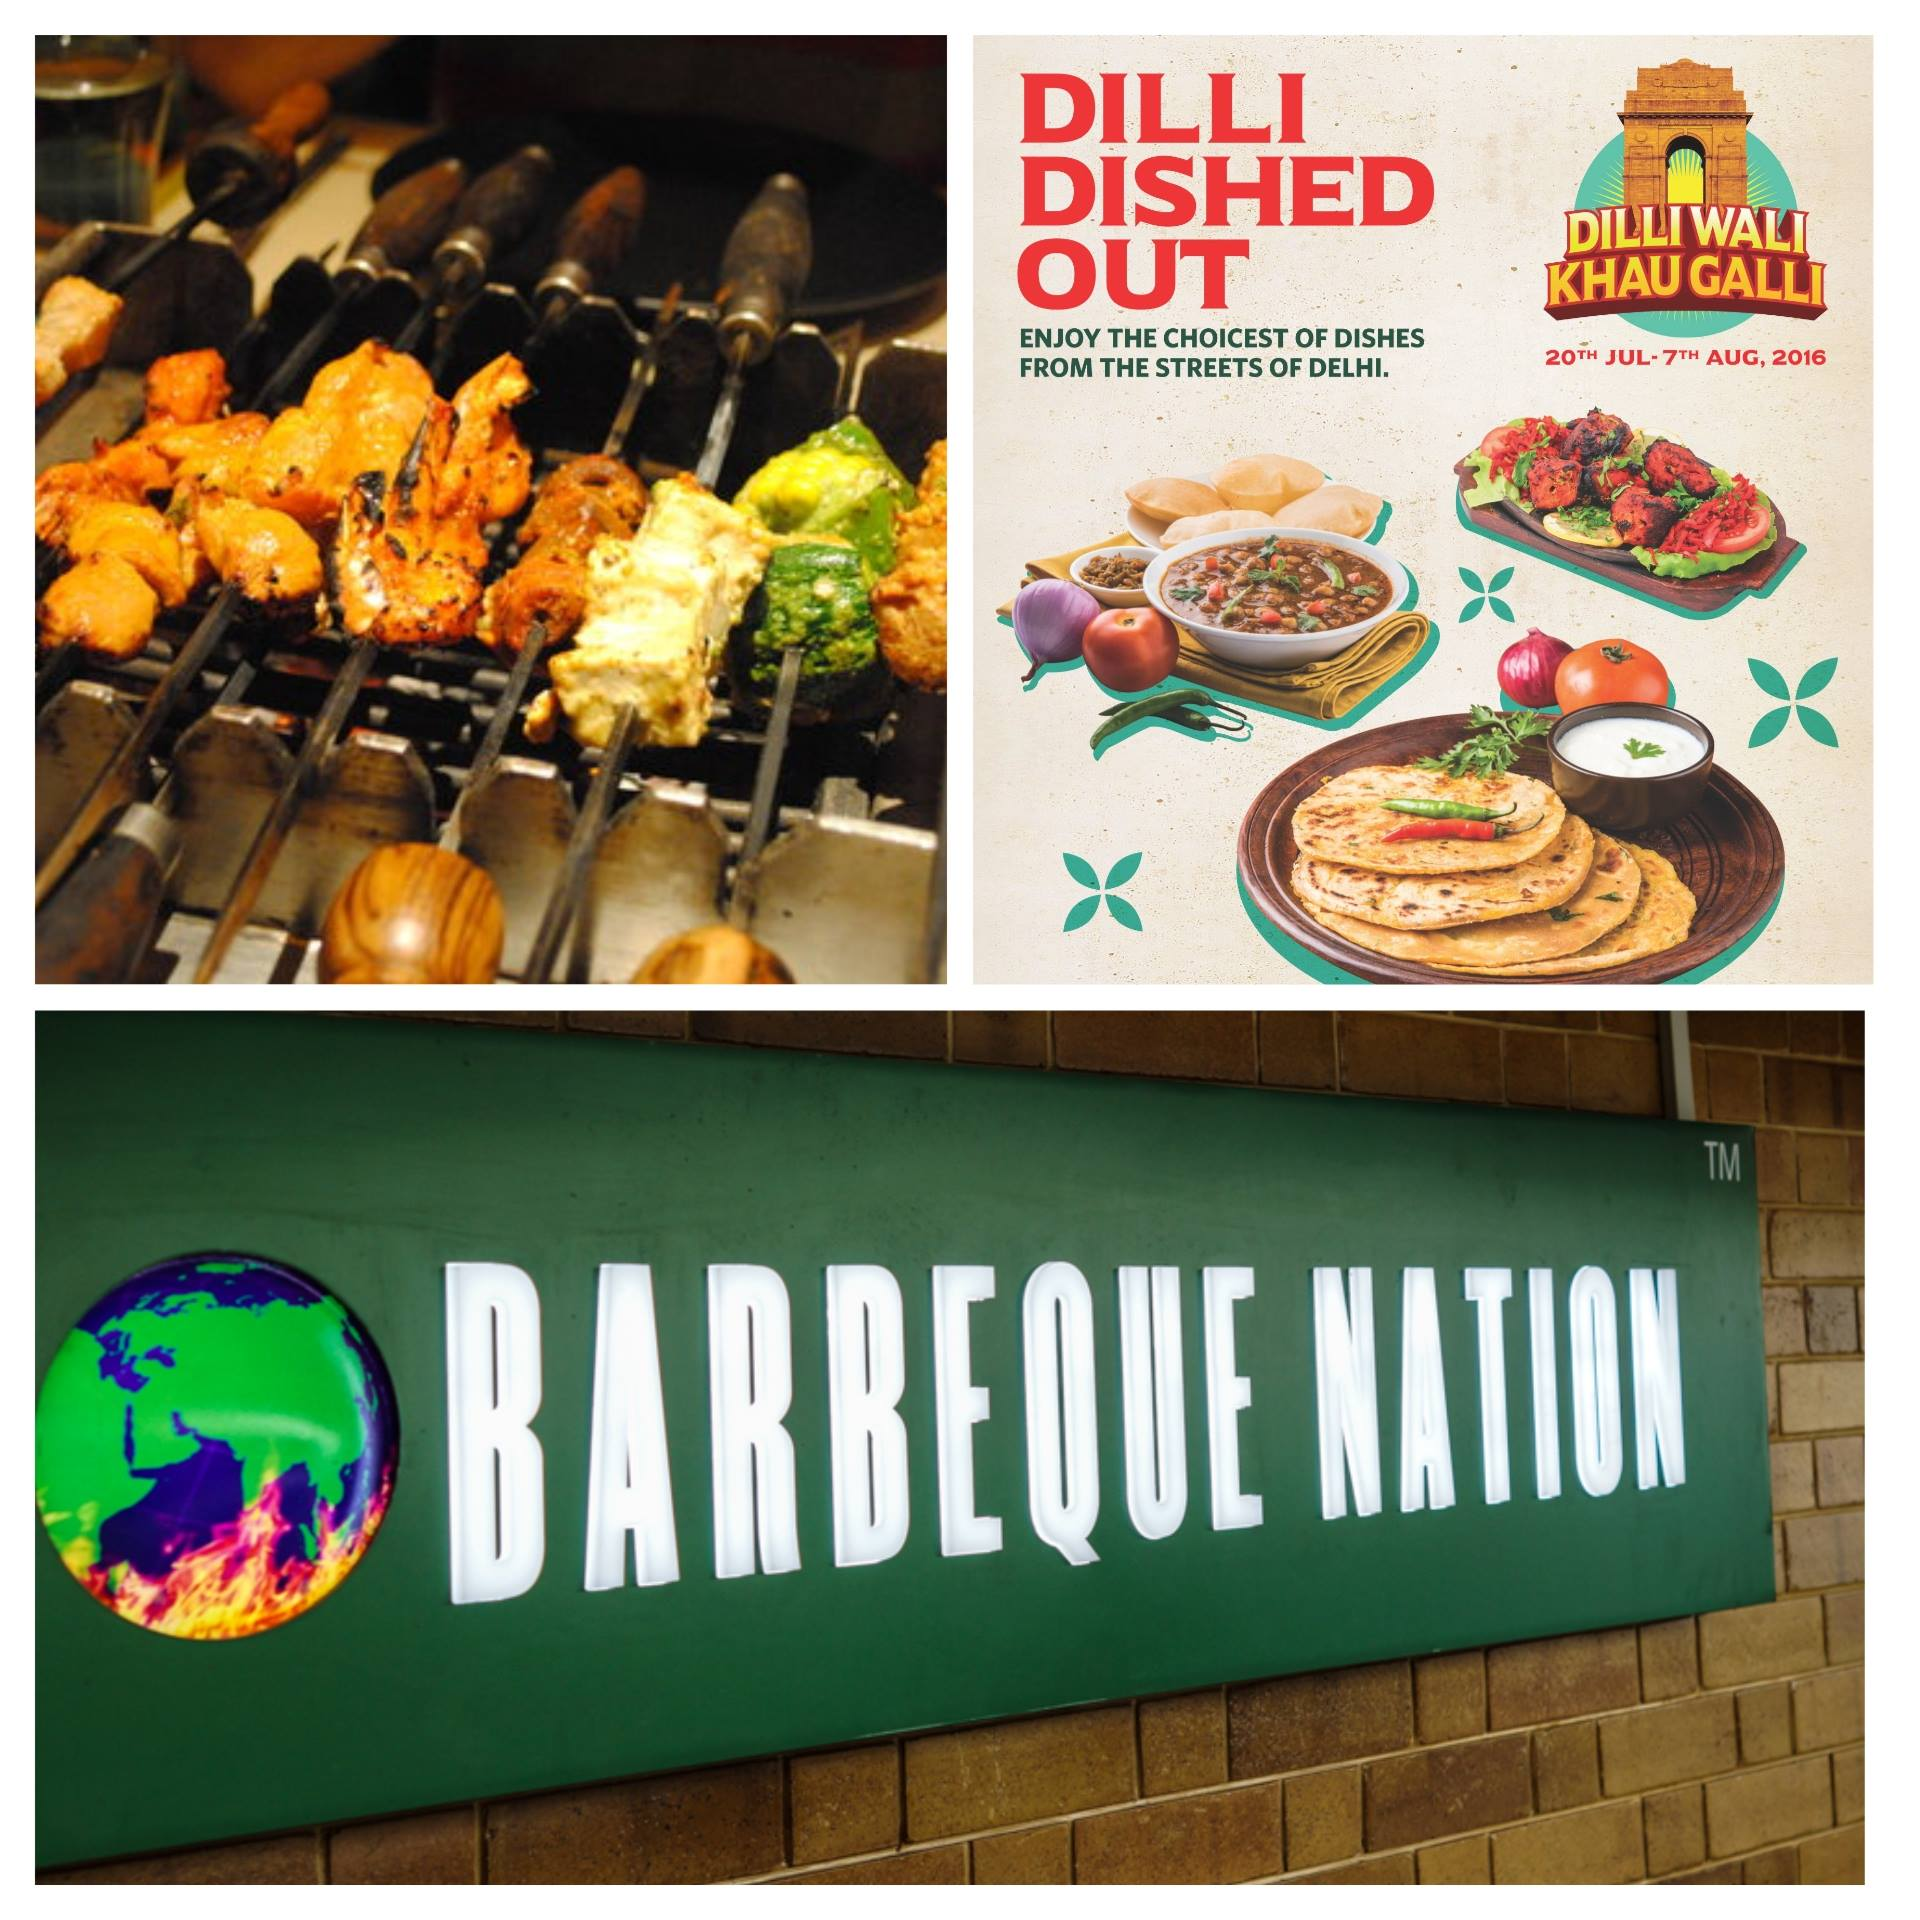 Dilli Dished Out - Barbeque Nation, Mangalore - Aug 2016